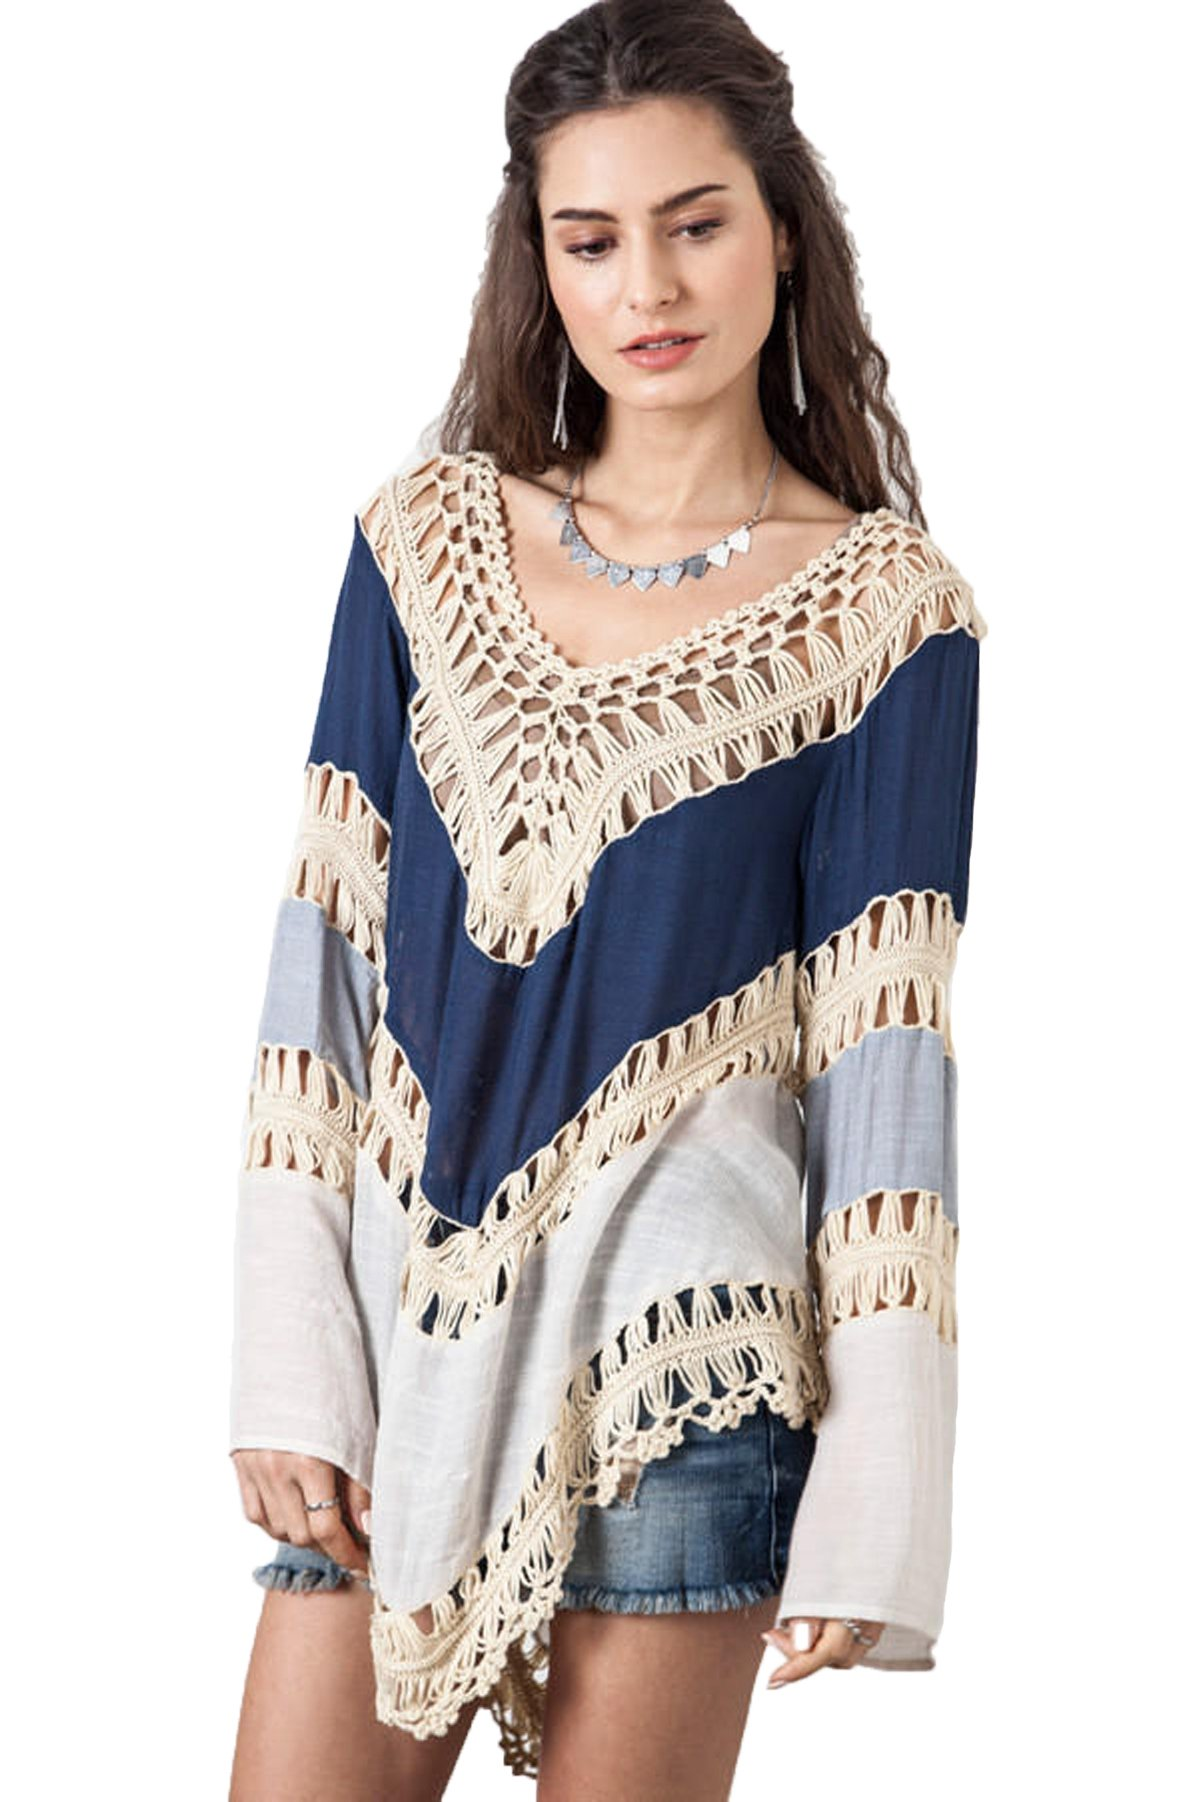 Nicetage Women's Crochet Lace Fringe Boho Bohemian Blouse Top Frayed Blouse Blue